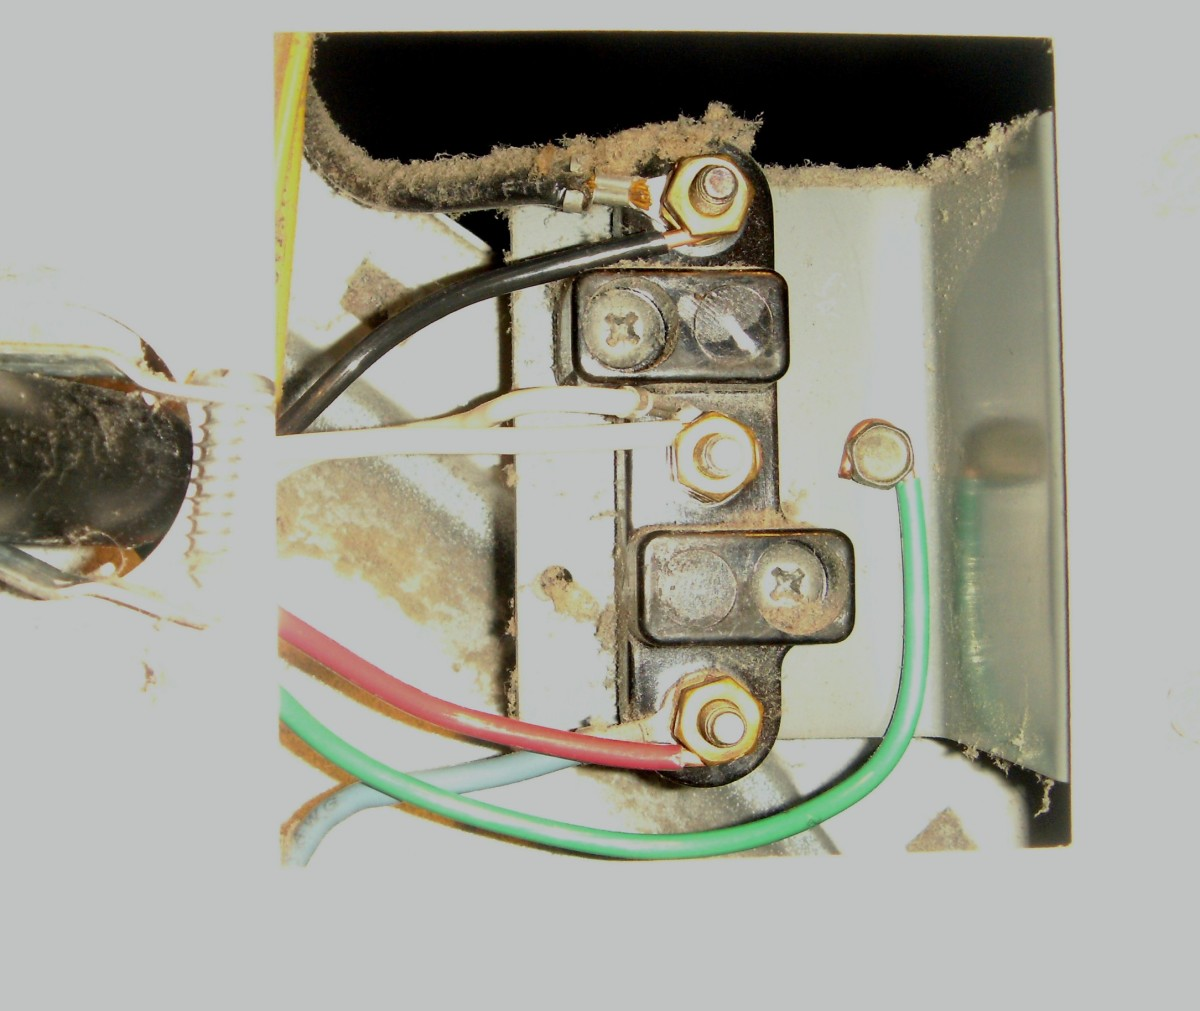 The white wire is placed on the center terminal, where it belongs.  The ground strap has been removed and the green wire attached to where it mounted on the frame of the dryer.